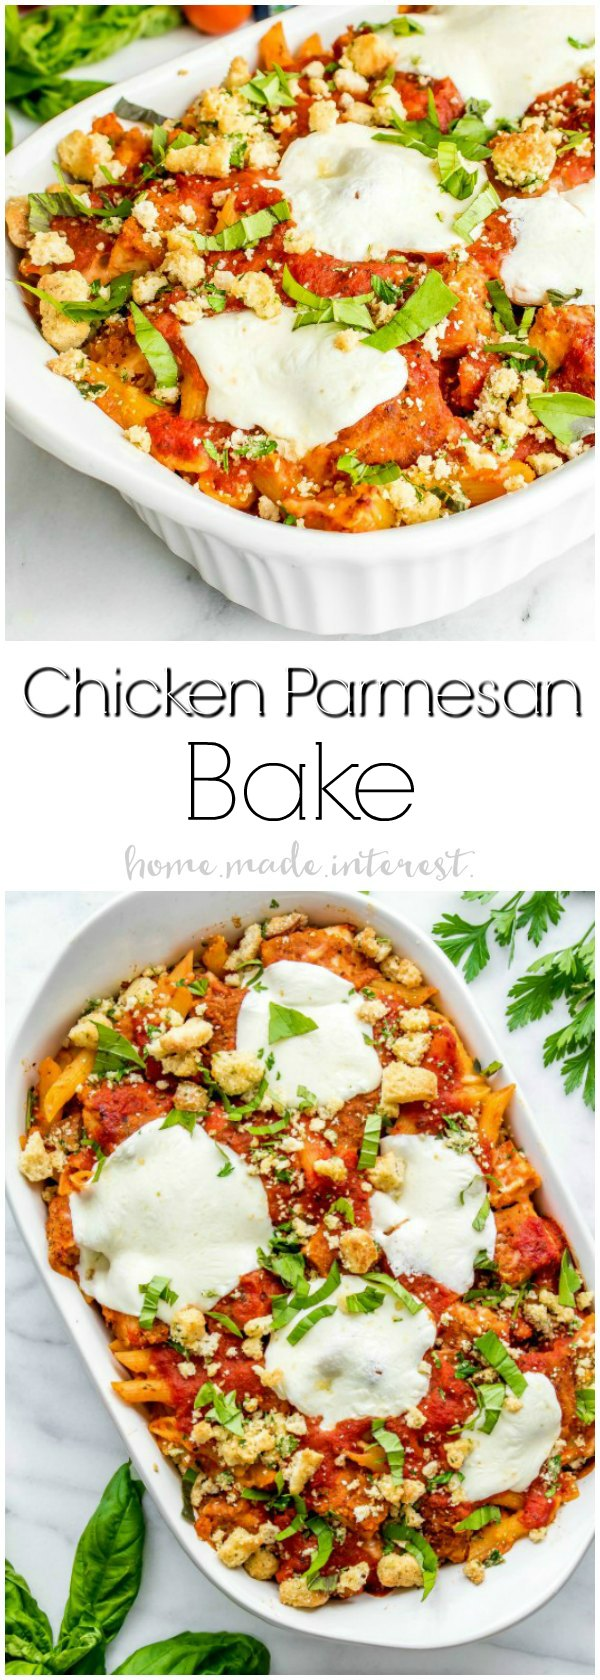 Chicken Parmesan Bake | This Chicken Parmesan Bake is a classic comfort food recipe that has been turned into an easy weeknight dinner recipe that is great back to school dinner for families. Chicken, pasta, sauce and lots of cheese make this easy casserole recipe taste just like chicken Parmesan in every bite!